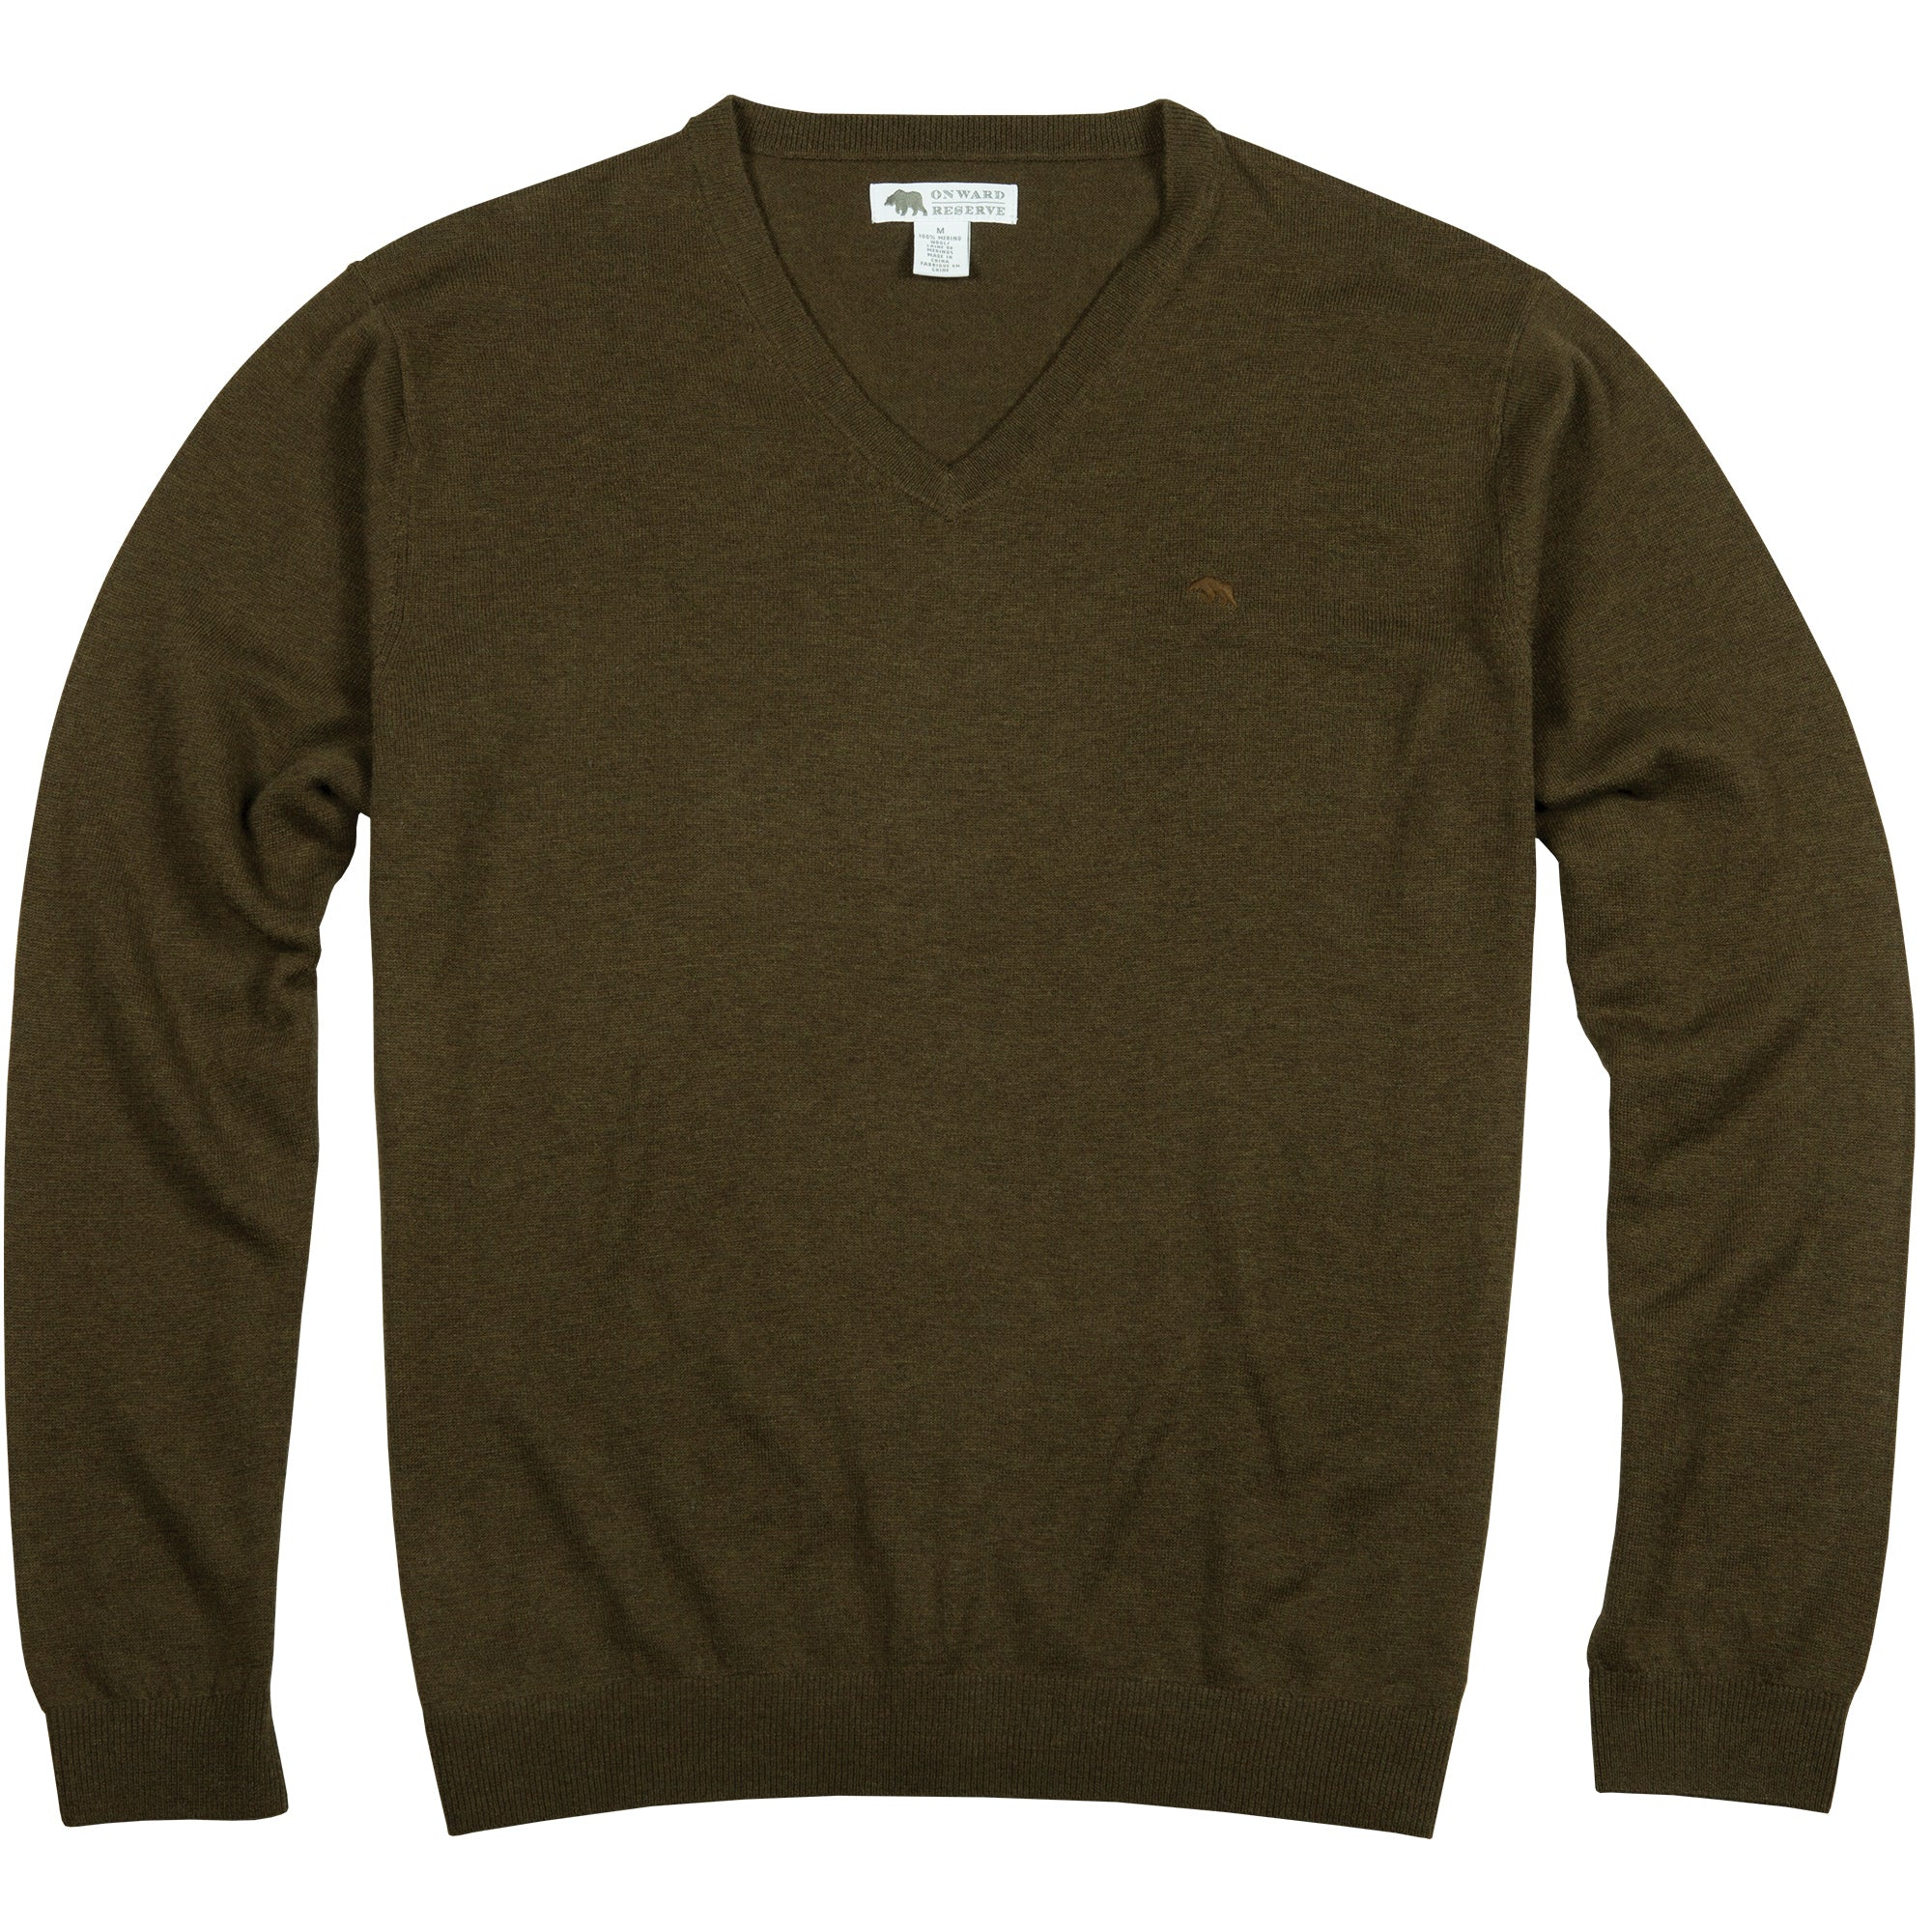 Washable Merino Wool Sweater - OnwardReserve